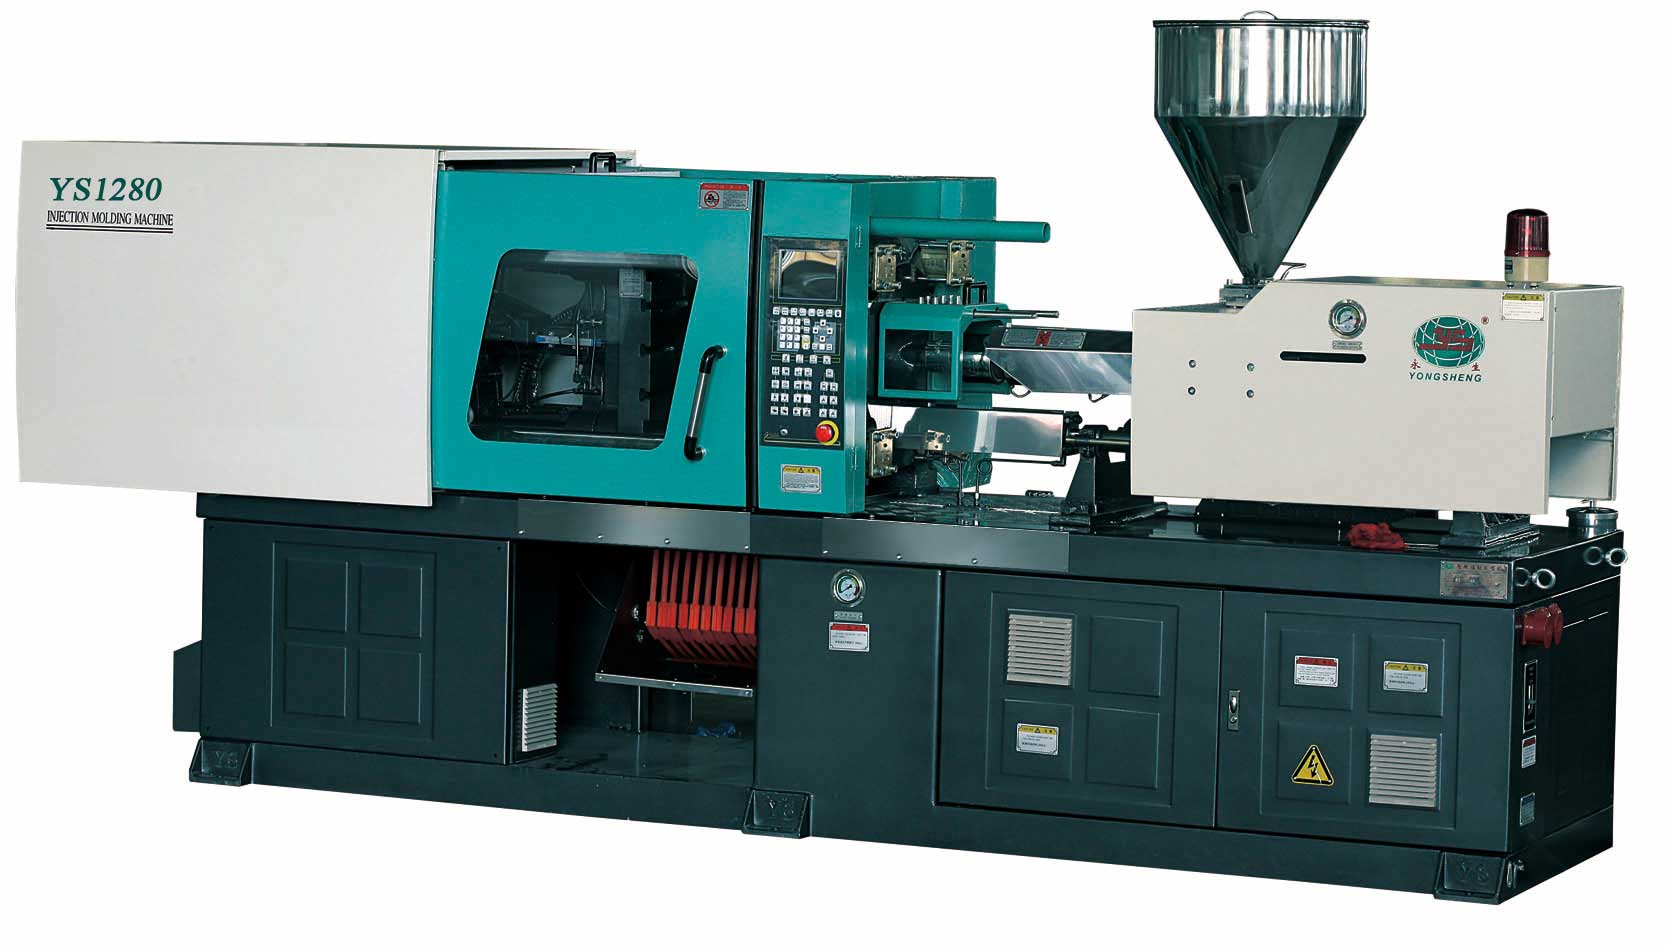 Plastic-Injection-Molding-Machine-YS1280-.jpg 1.jpg